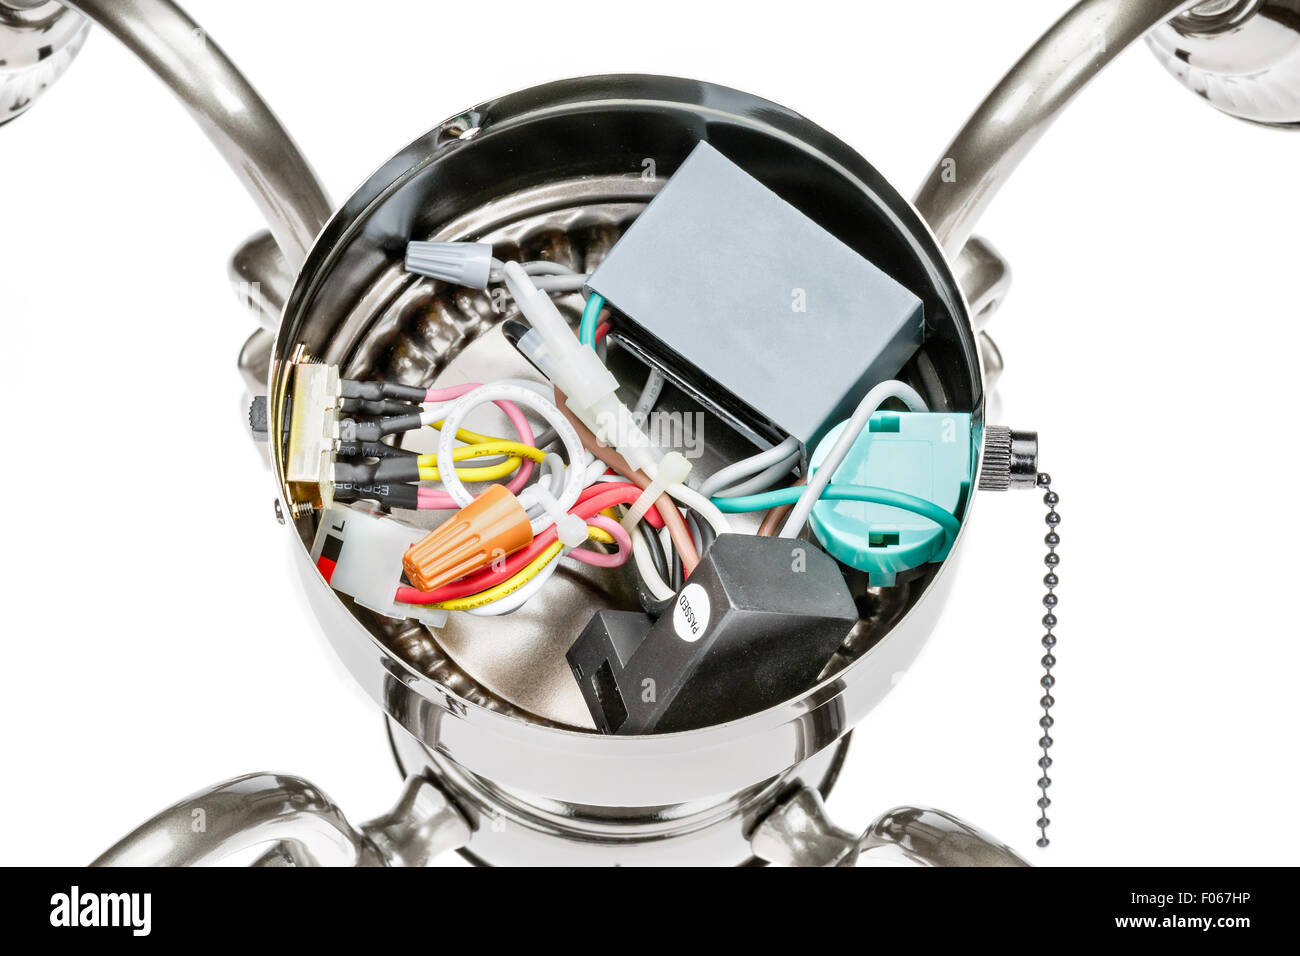 Internal Wiring Of A Ceiling Fan Light Fixture Stock Photo